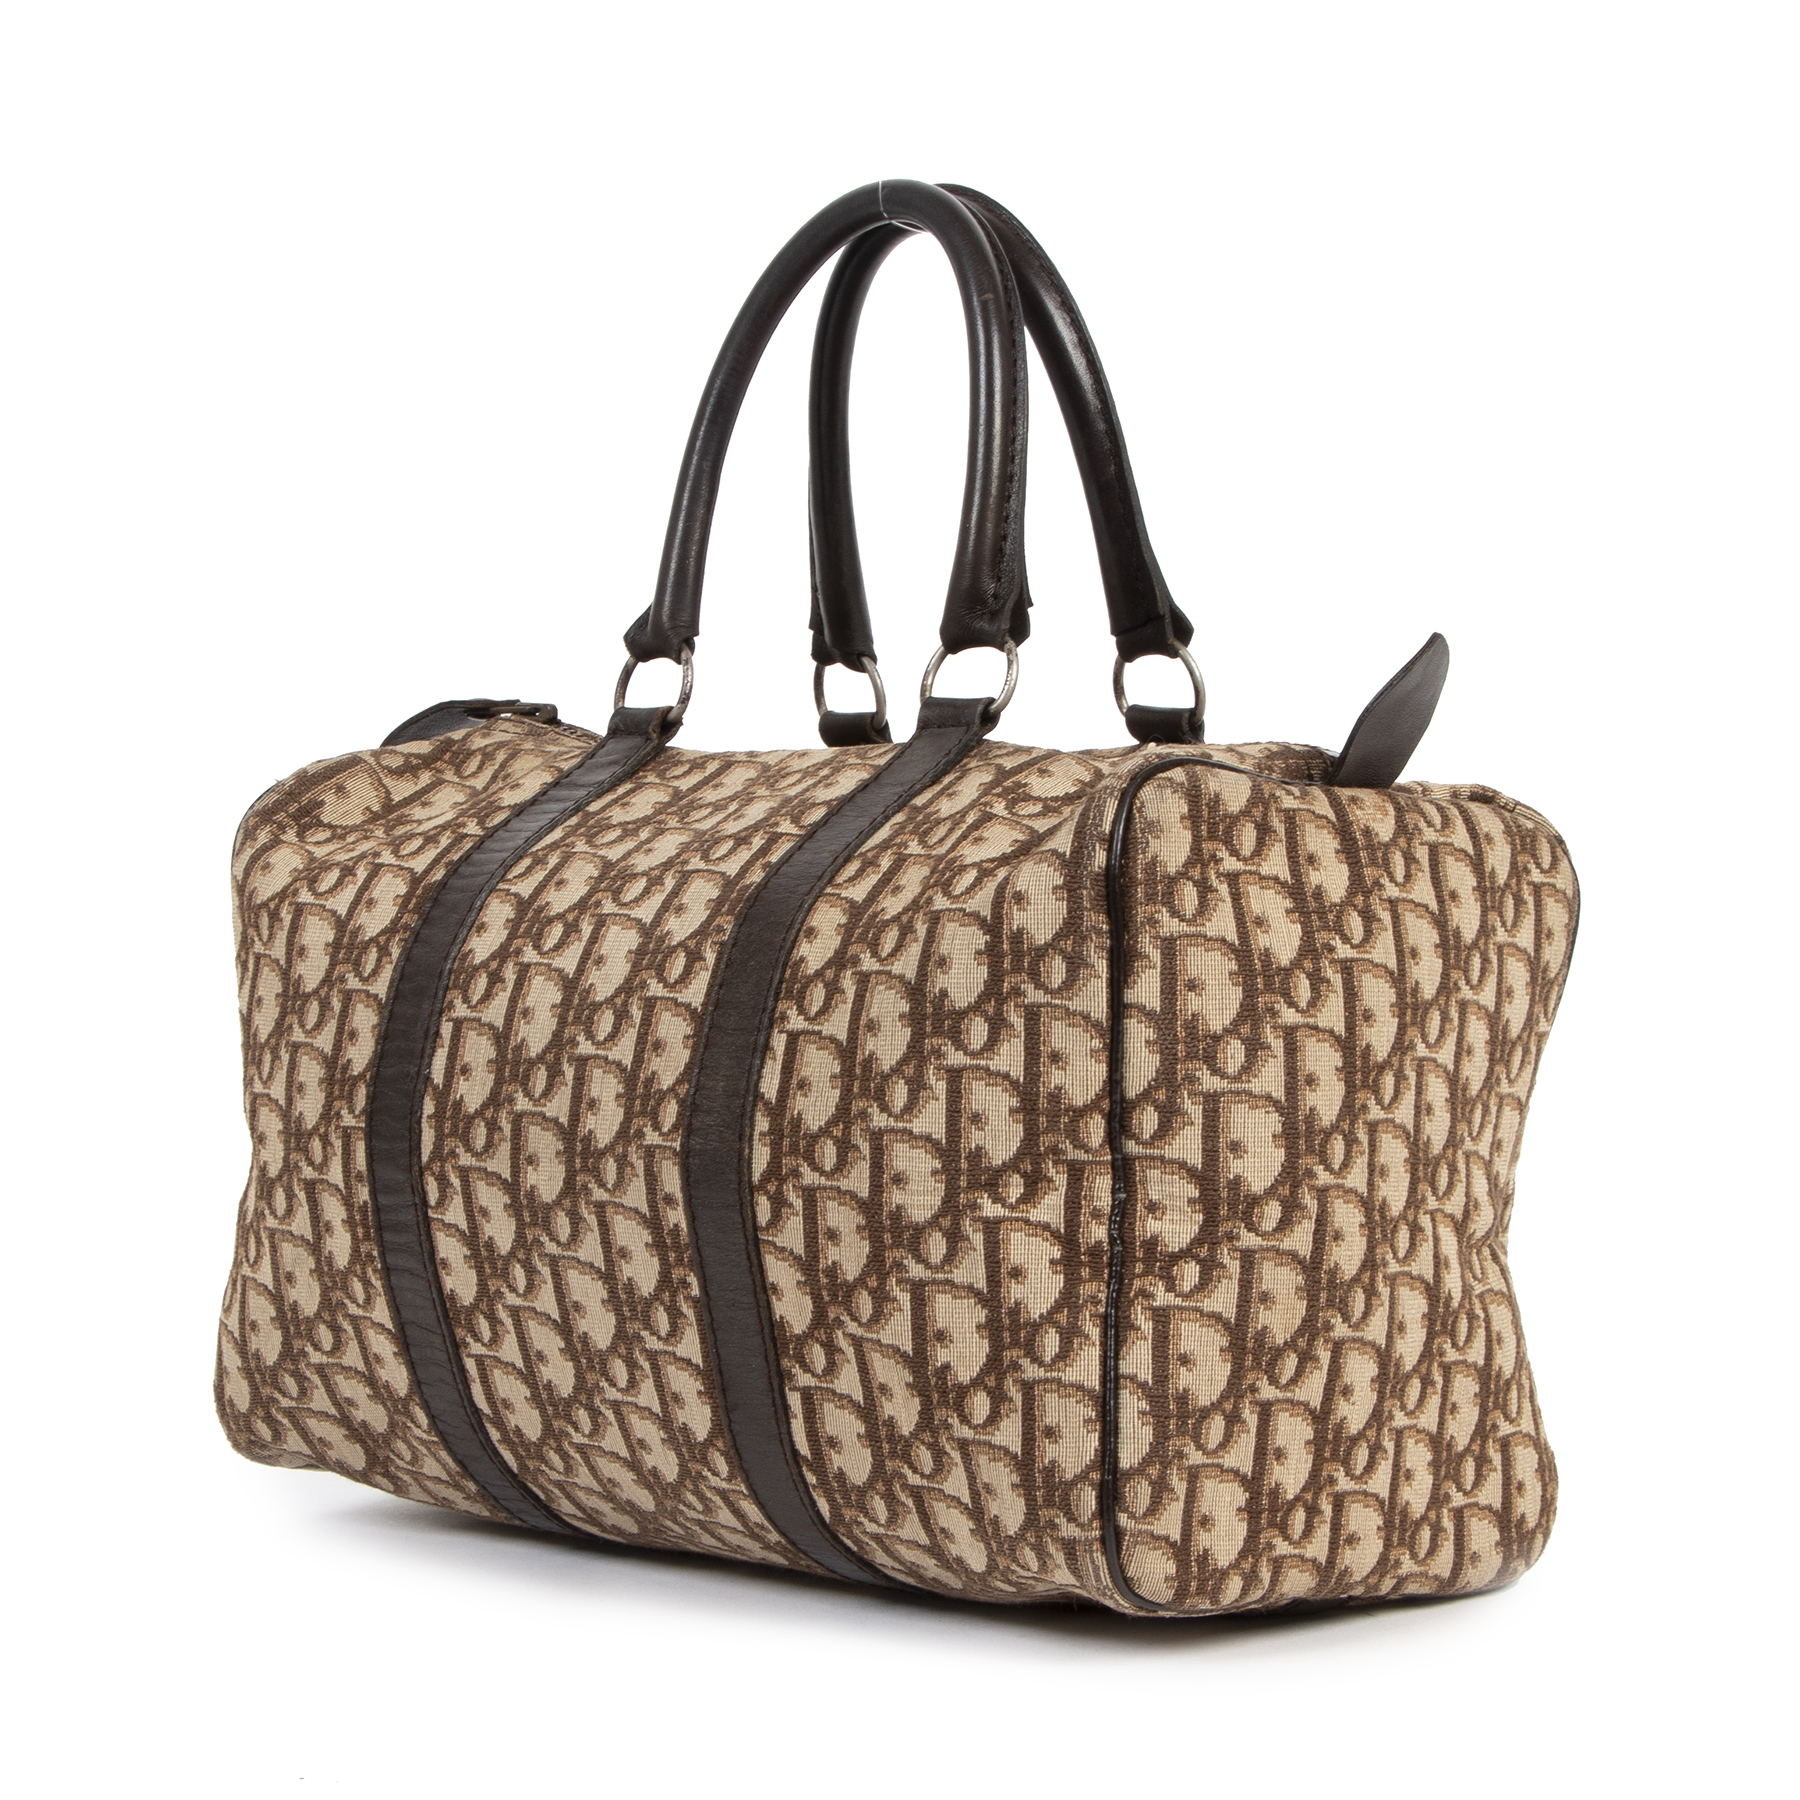 Dior Brown Monogram Canvas Boston Bag kopen en verkopen